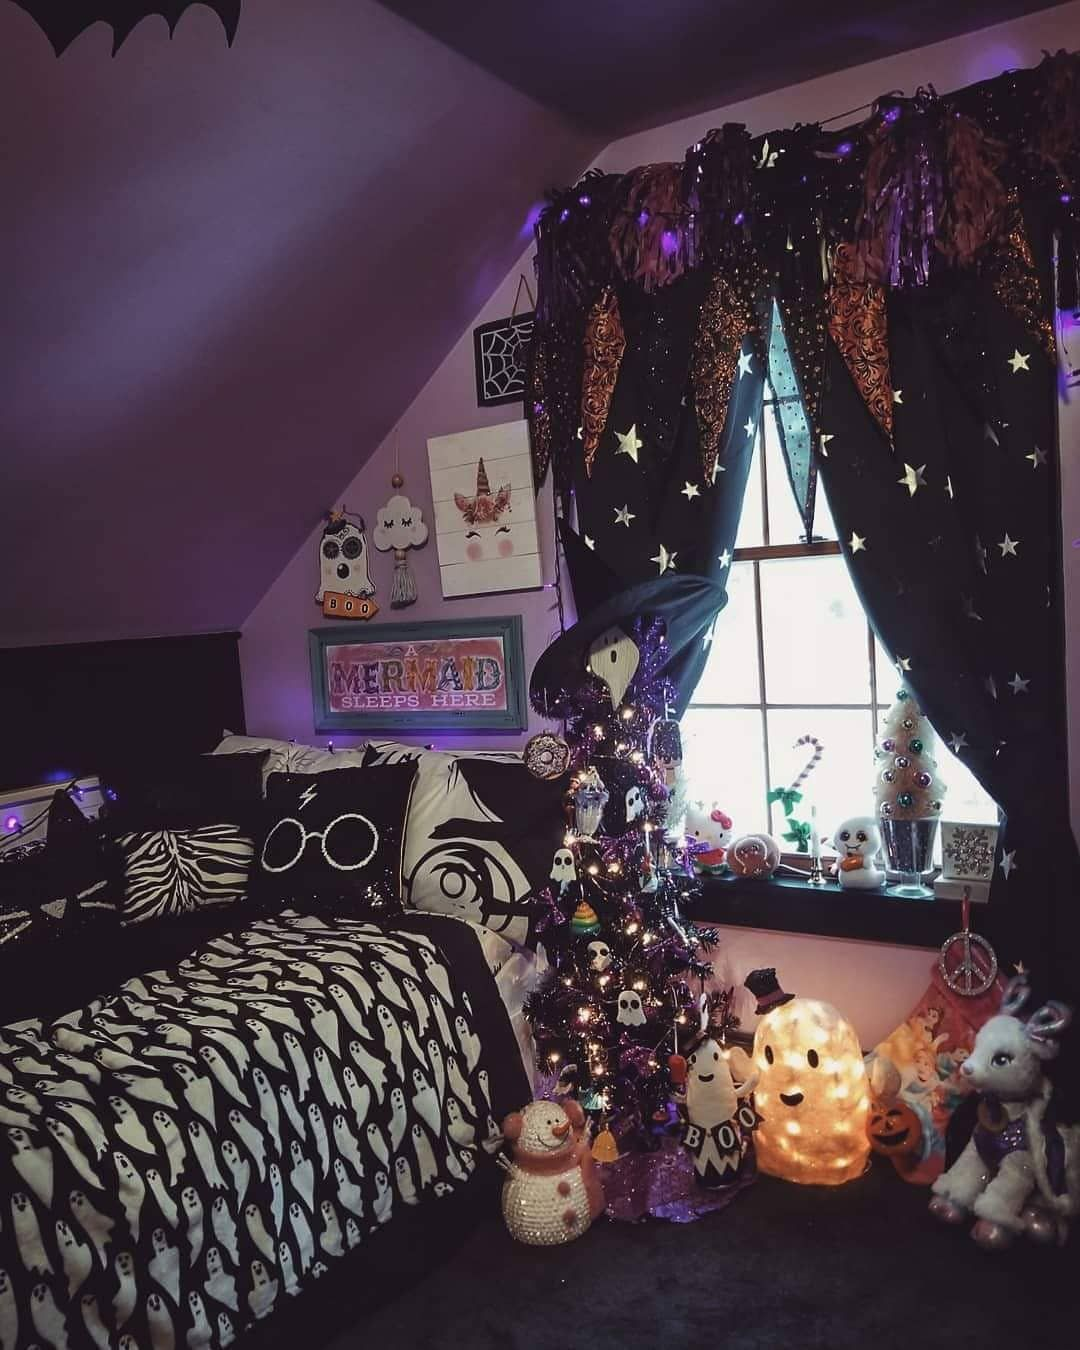 One Room Is Halloween Related But Thought It Would Be Cute To Share My Kids Mini Tree S In Th Halloween Bedroom Decor Halloween Room Decor Halloween Bedroom